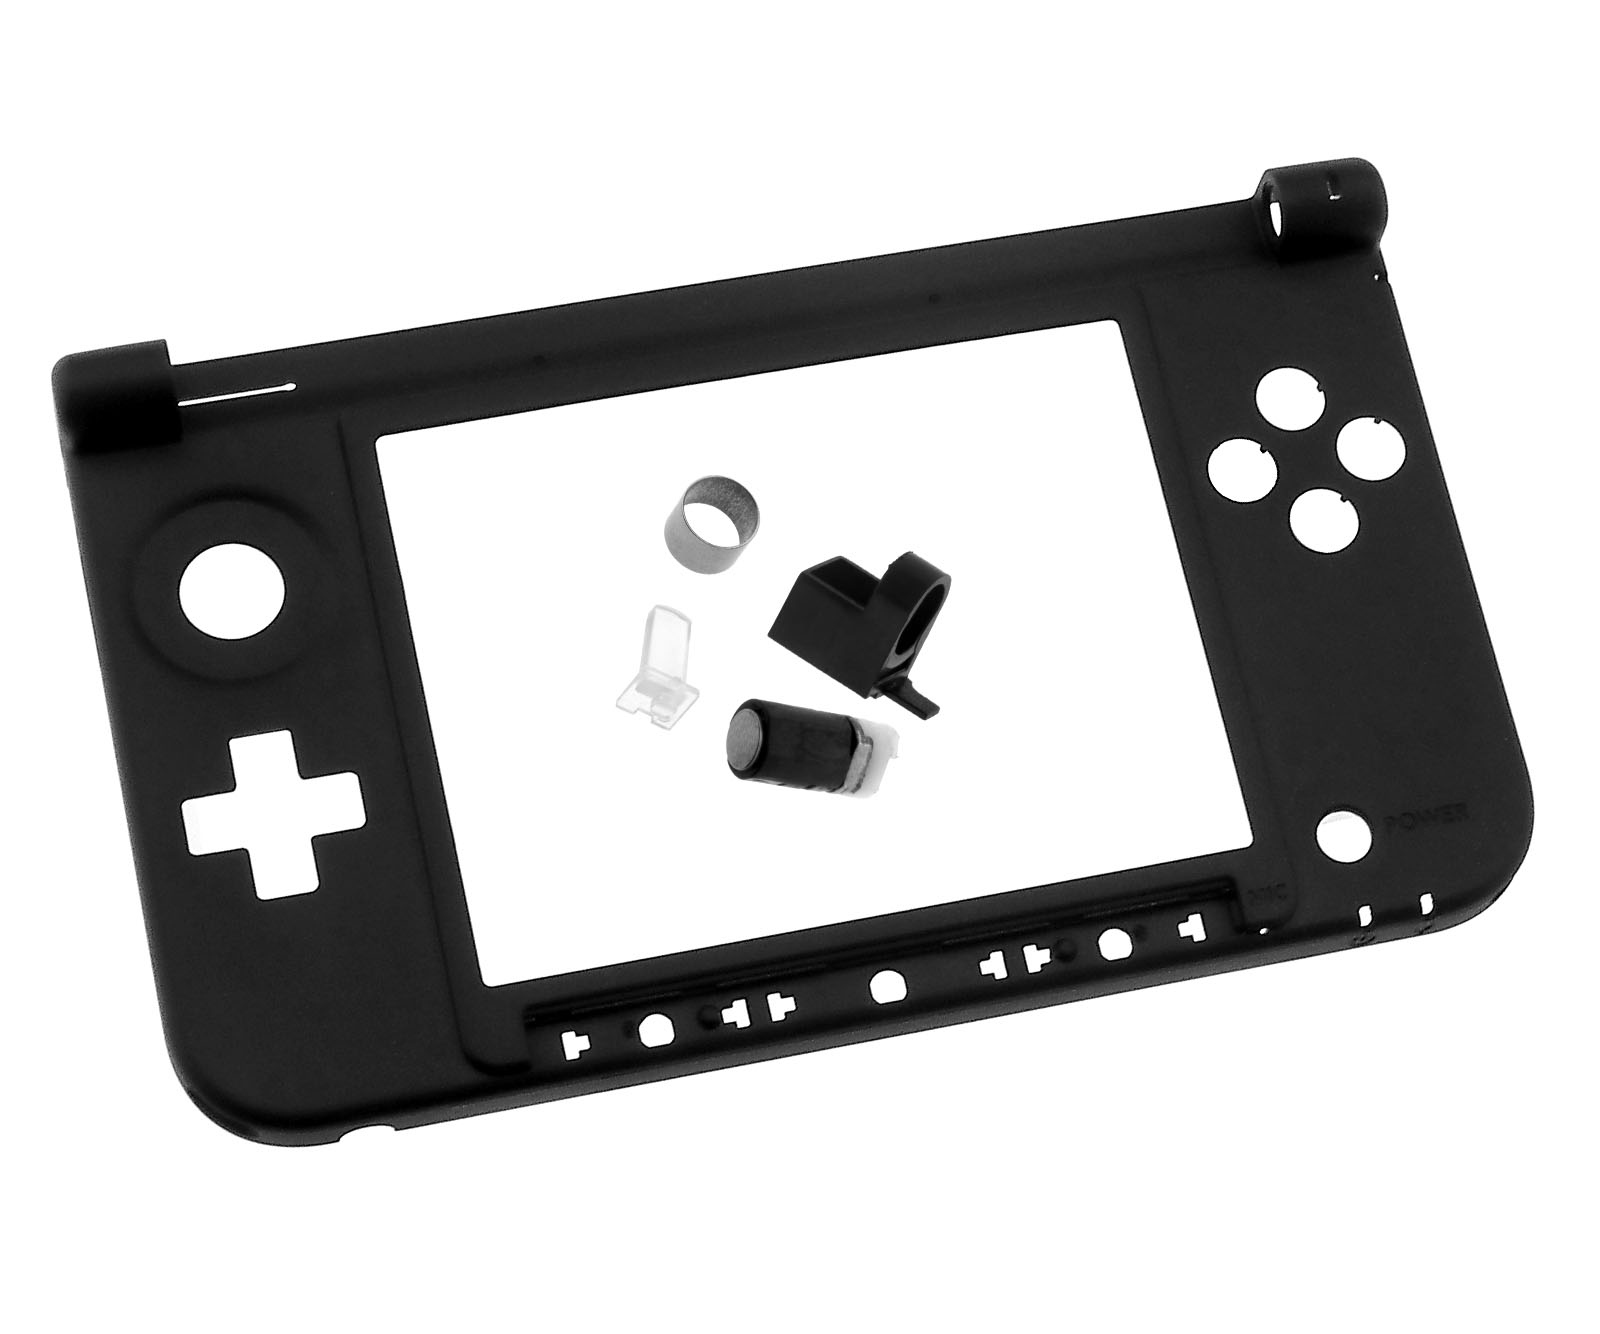 how to fix a 3ds hinge